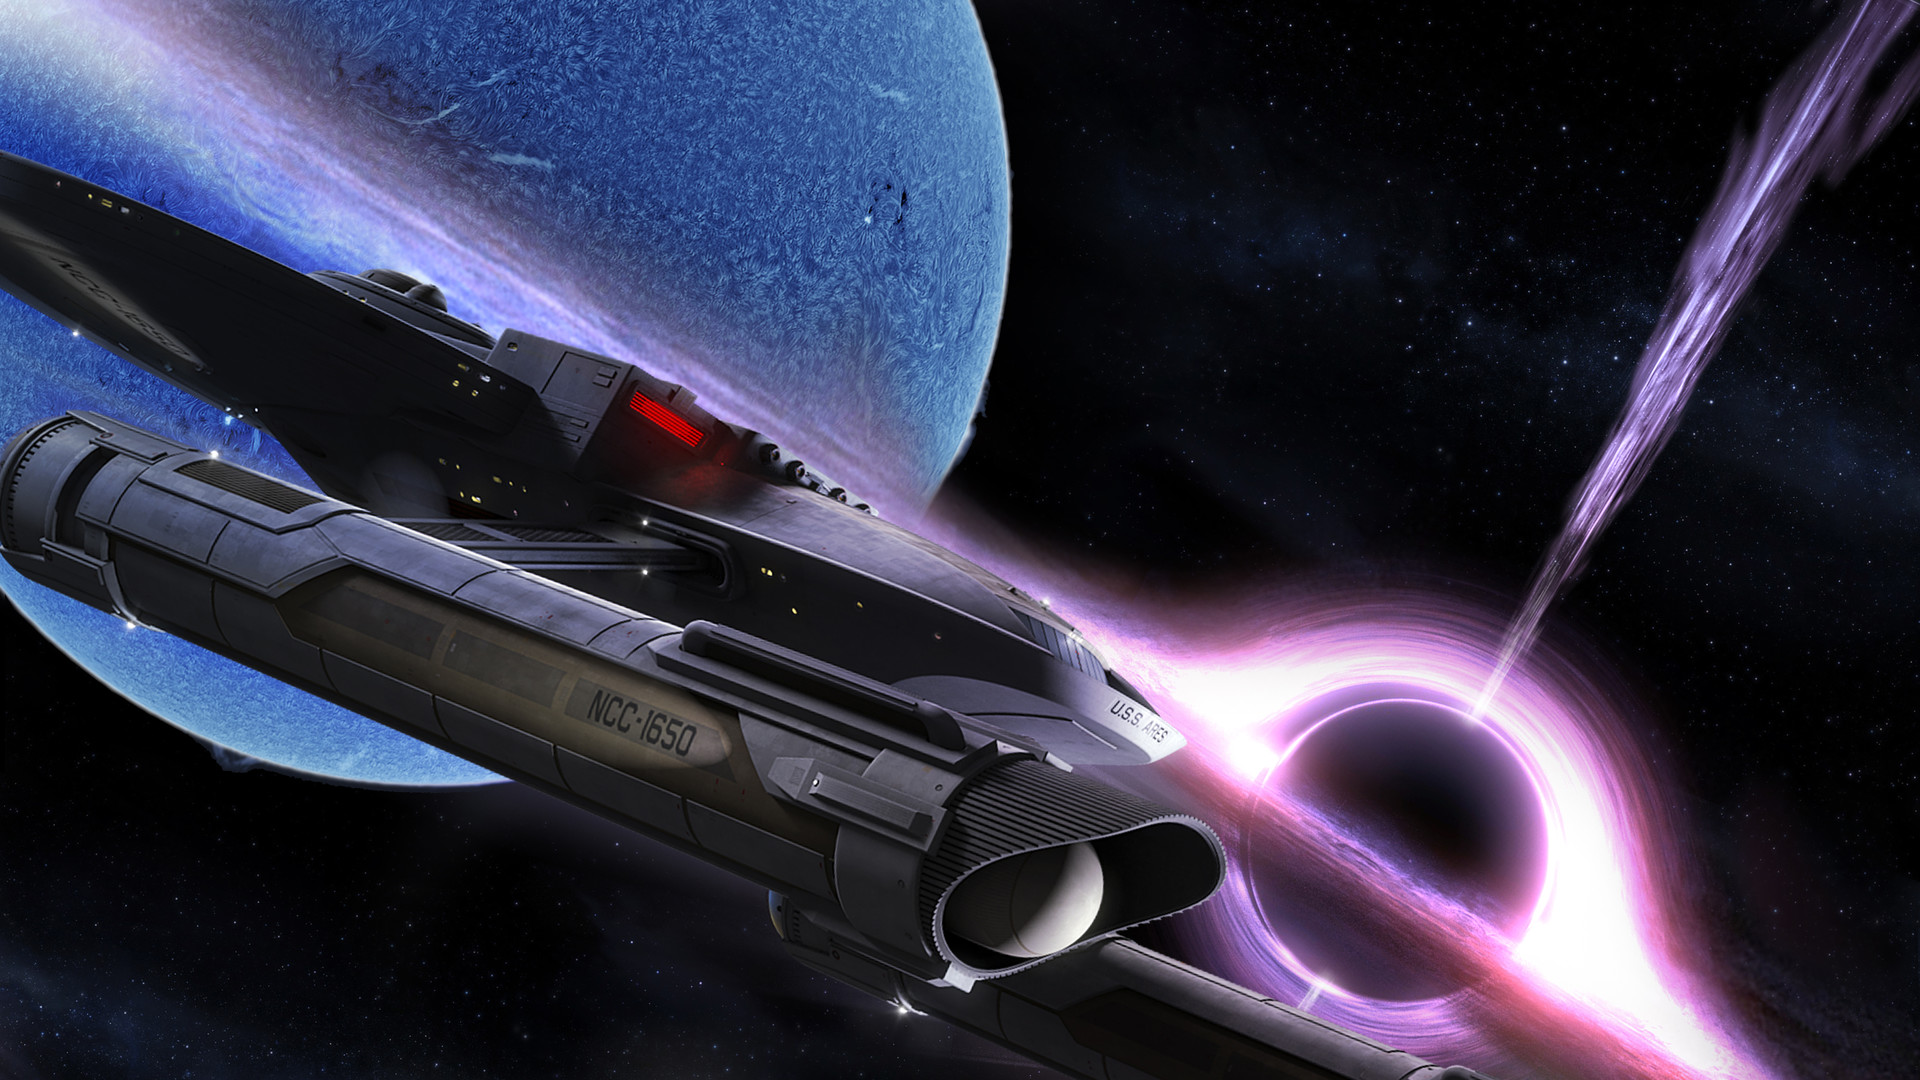 Digital composite using NASA imagery elements from the Fan-Film Axanar